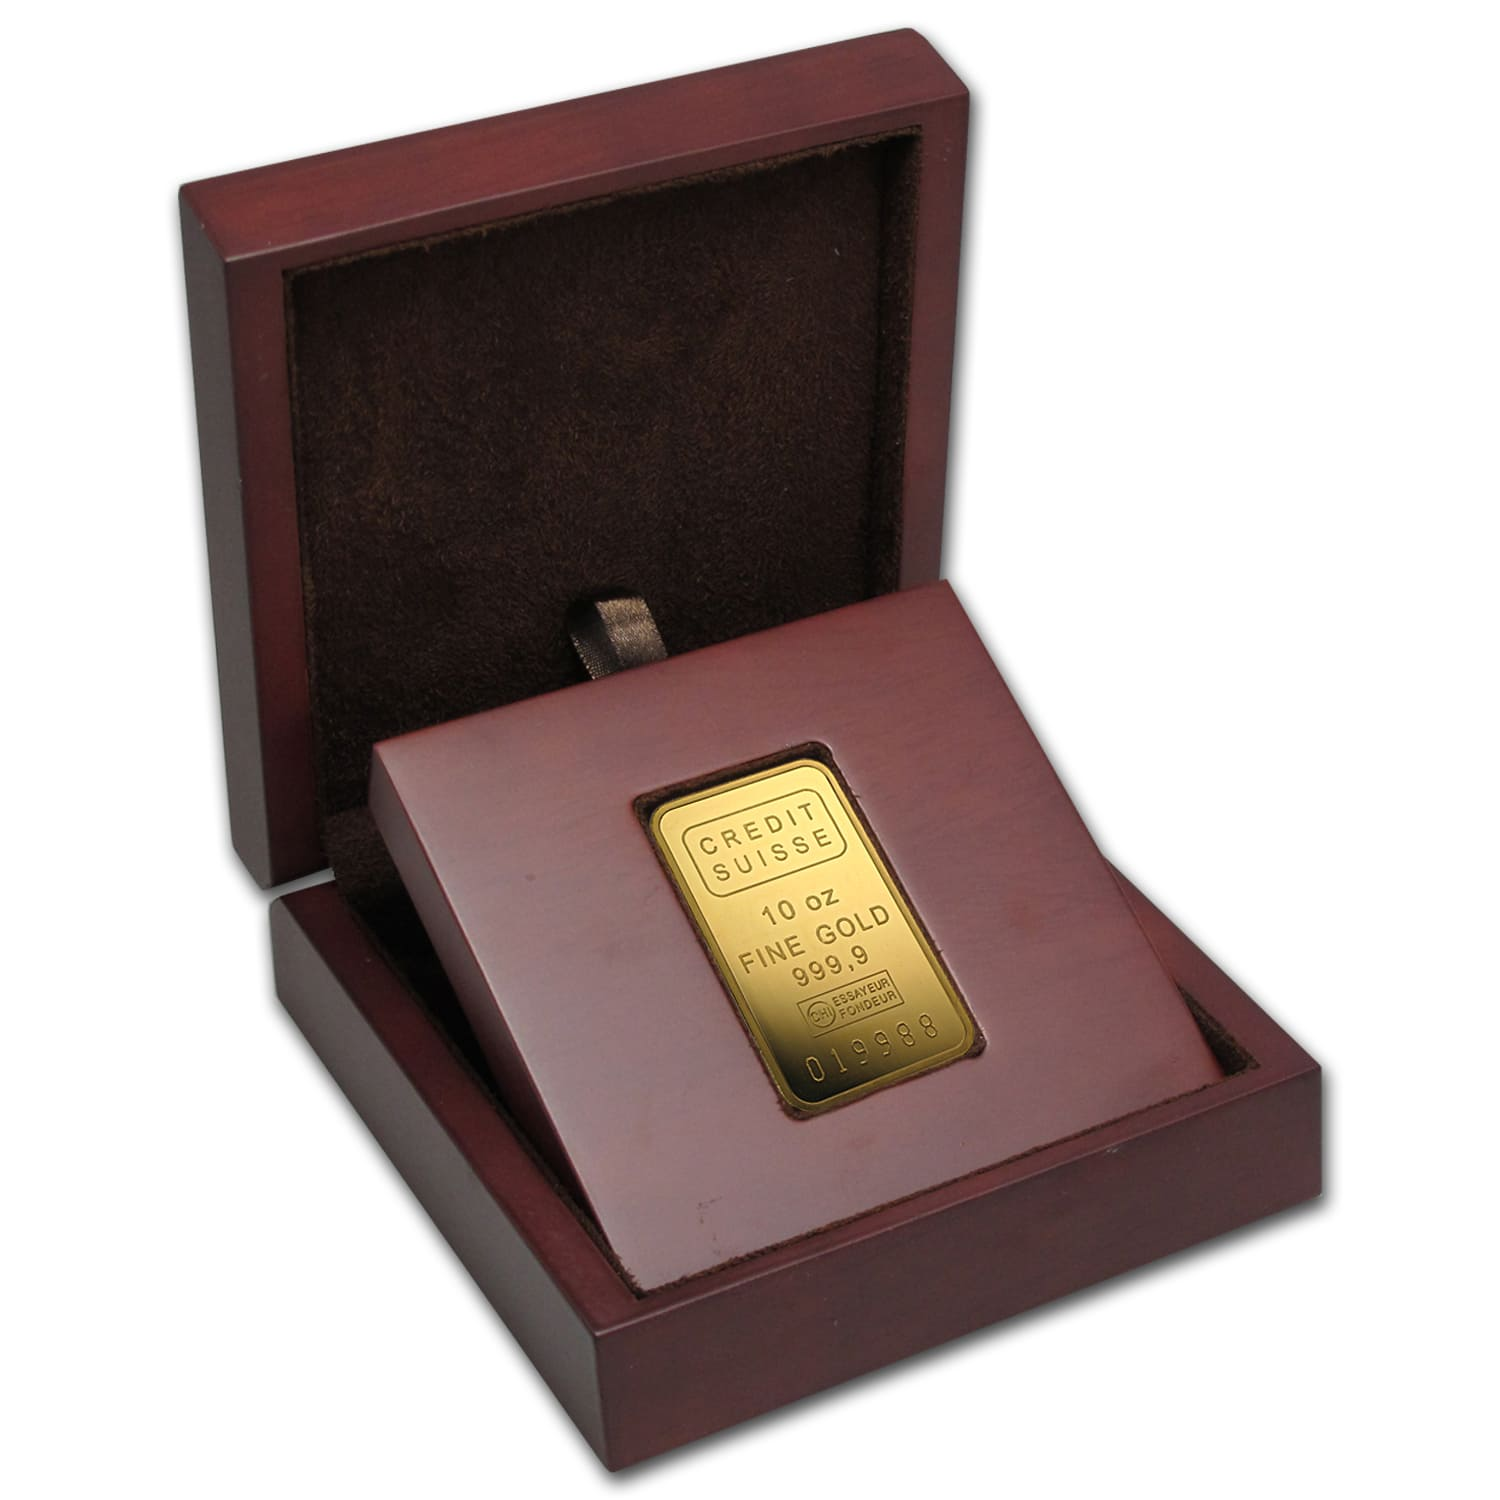 10 oz Gold Bar - Credit Suisse (w/Assay)